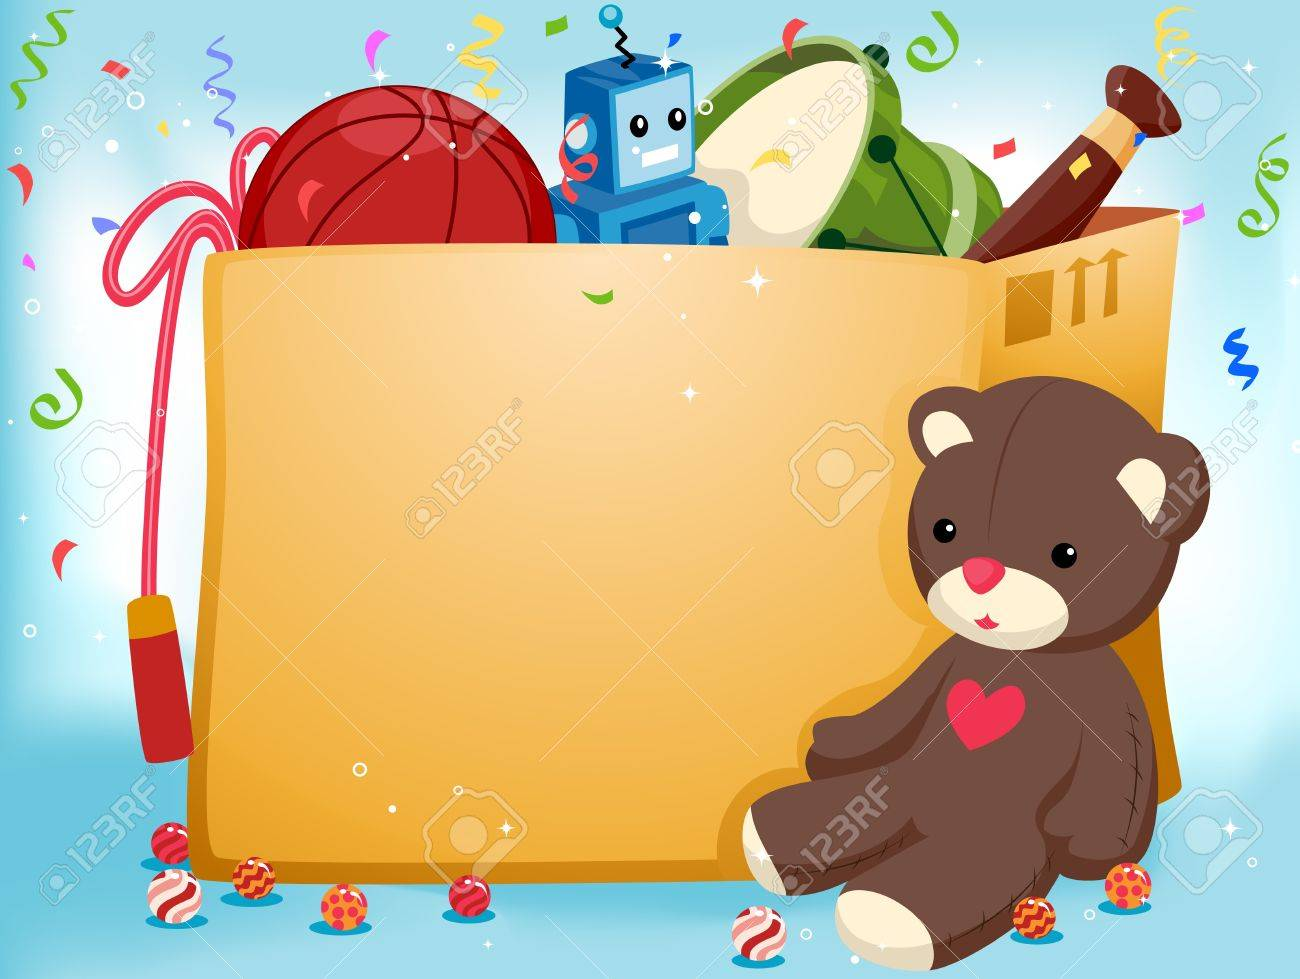 Party Invitation Featuring a Stuffed Toy Sitting Beside a Box of Toys Stock Photo - 8427175